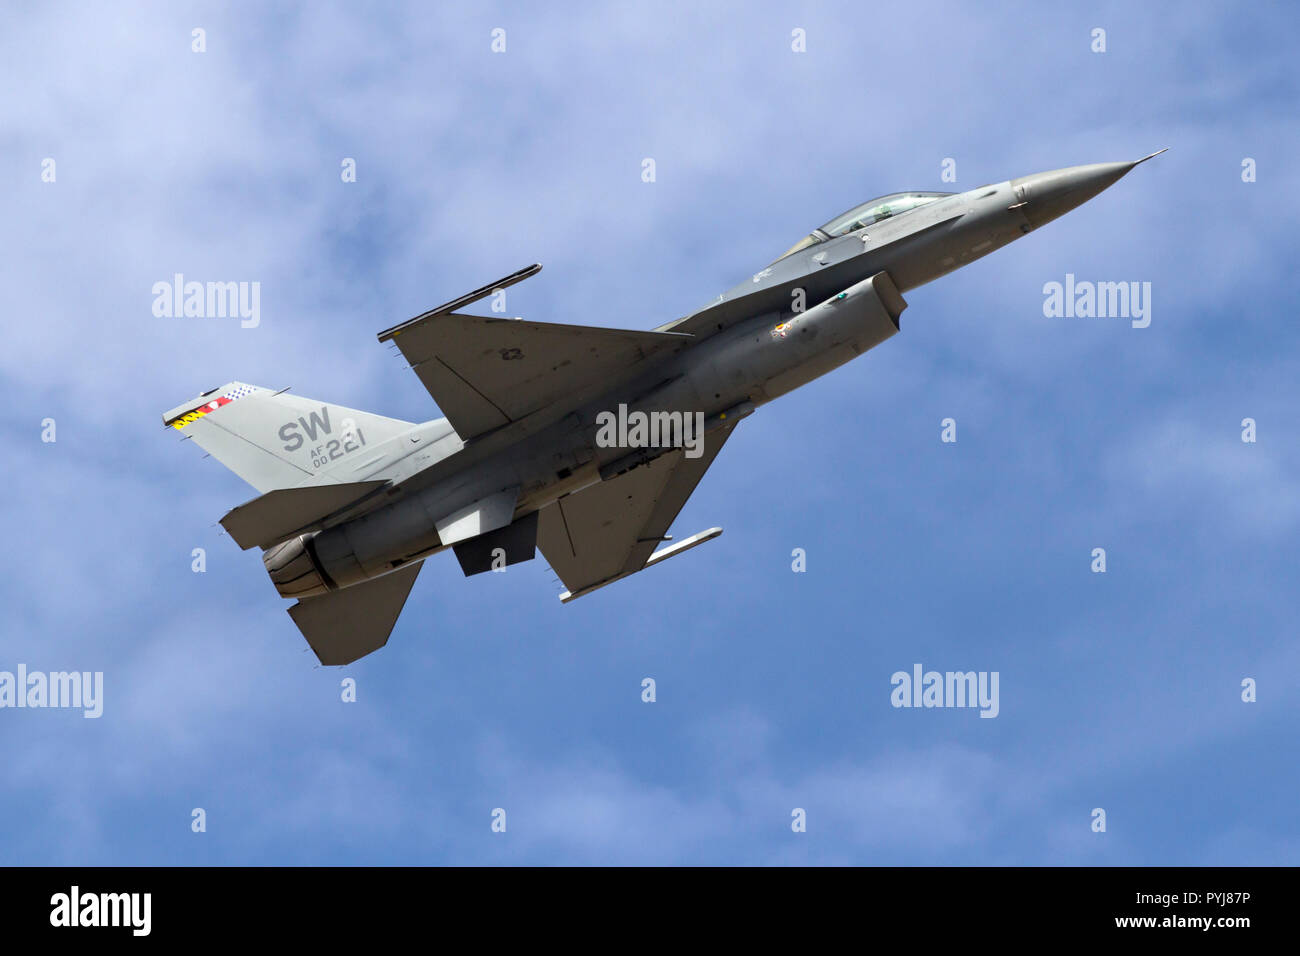 Maj John 'RAIN' Waters pilots the Lockheed Martin F-16 Fighting Falcon, AF00221, as part of the F-16 Viper Demonstration Team out of Shaw AFB, SC. - Stock Image